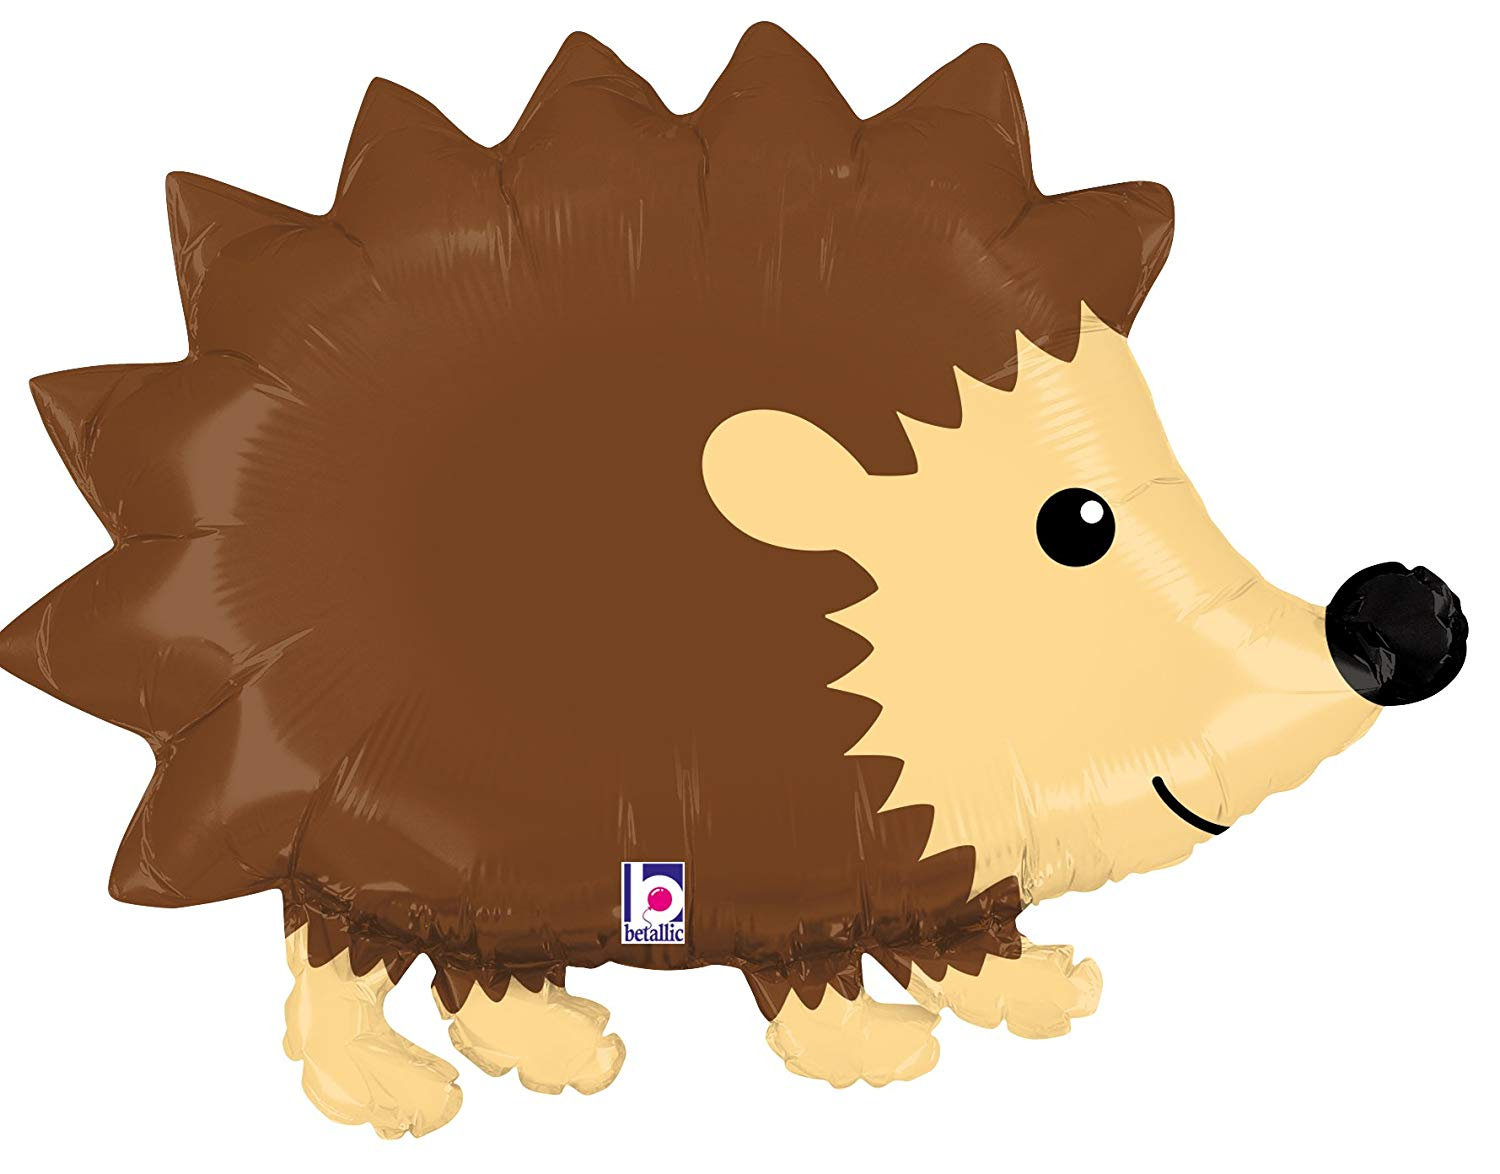 Hedgehog clipart baby hedgehog. Free vector illustration of